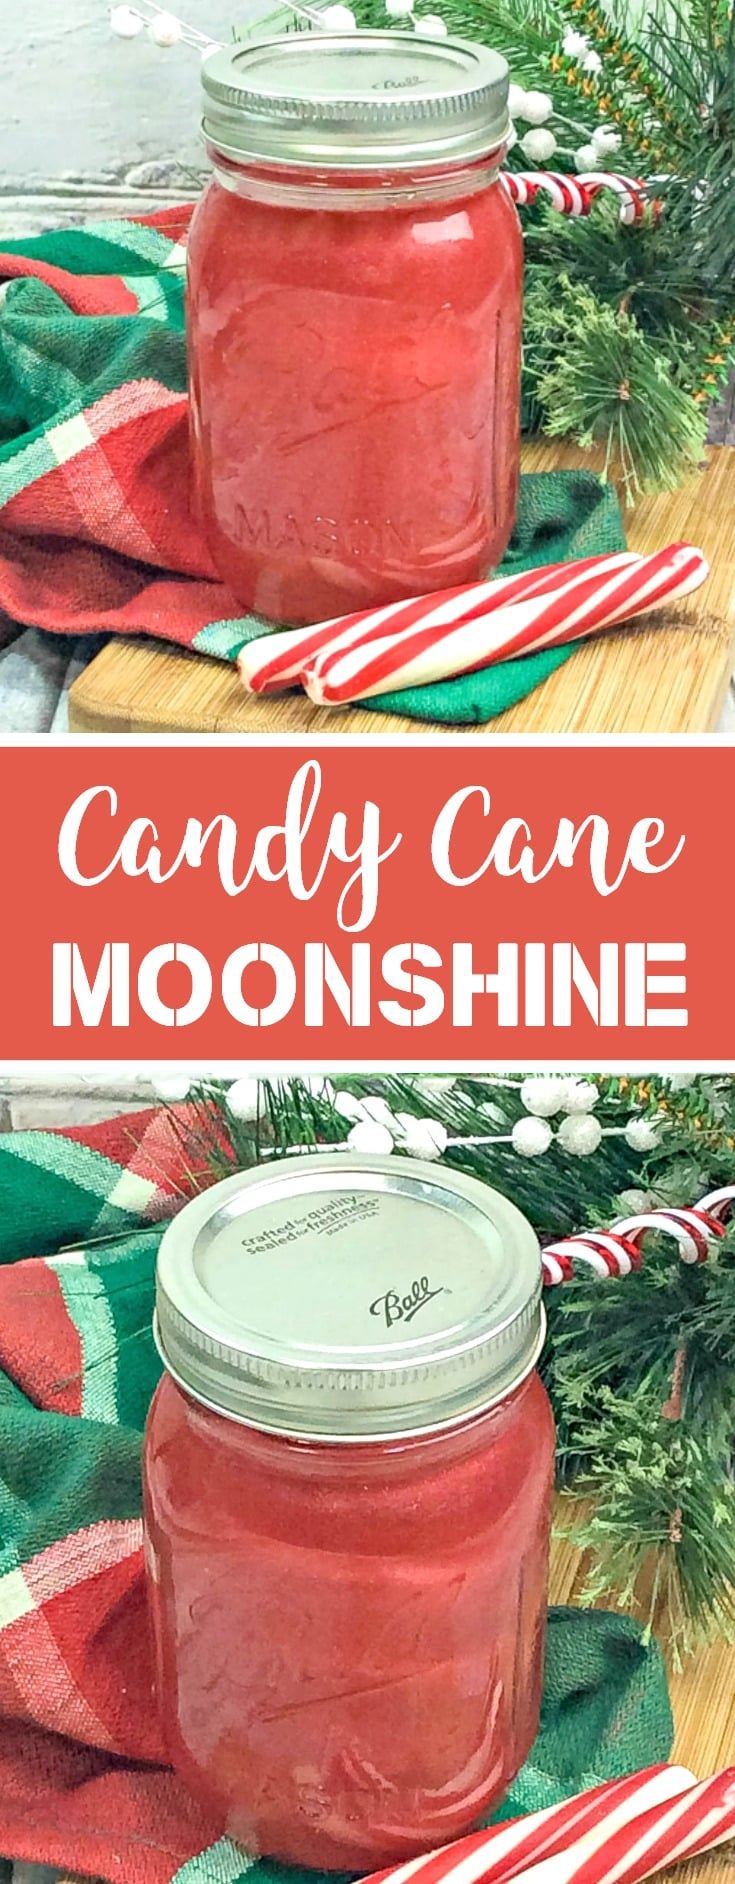 CANDY CANE MOONSHINE RECIPE